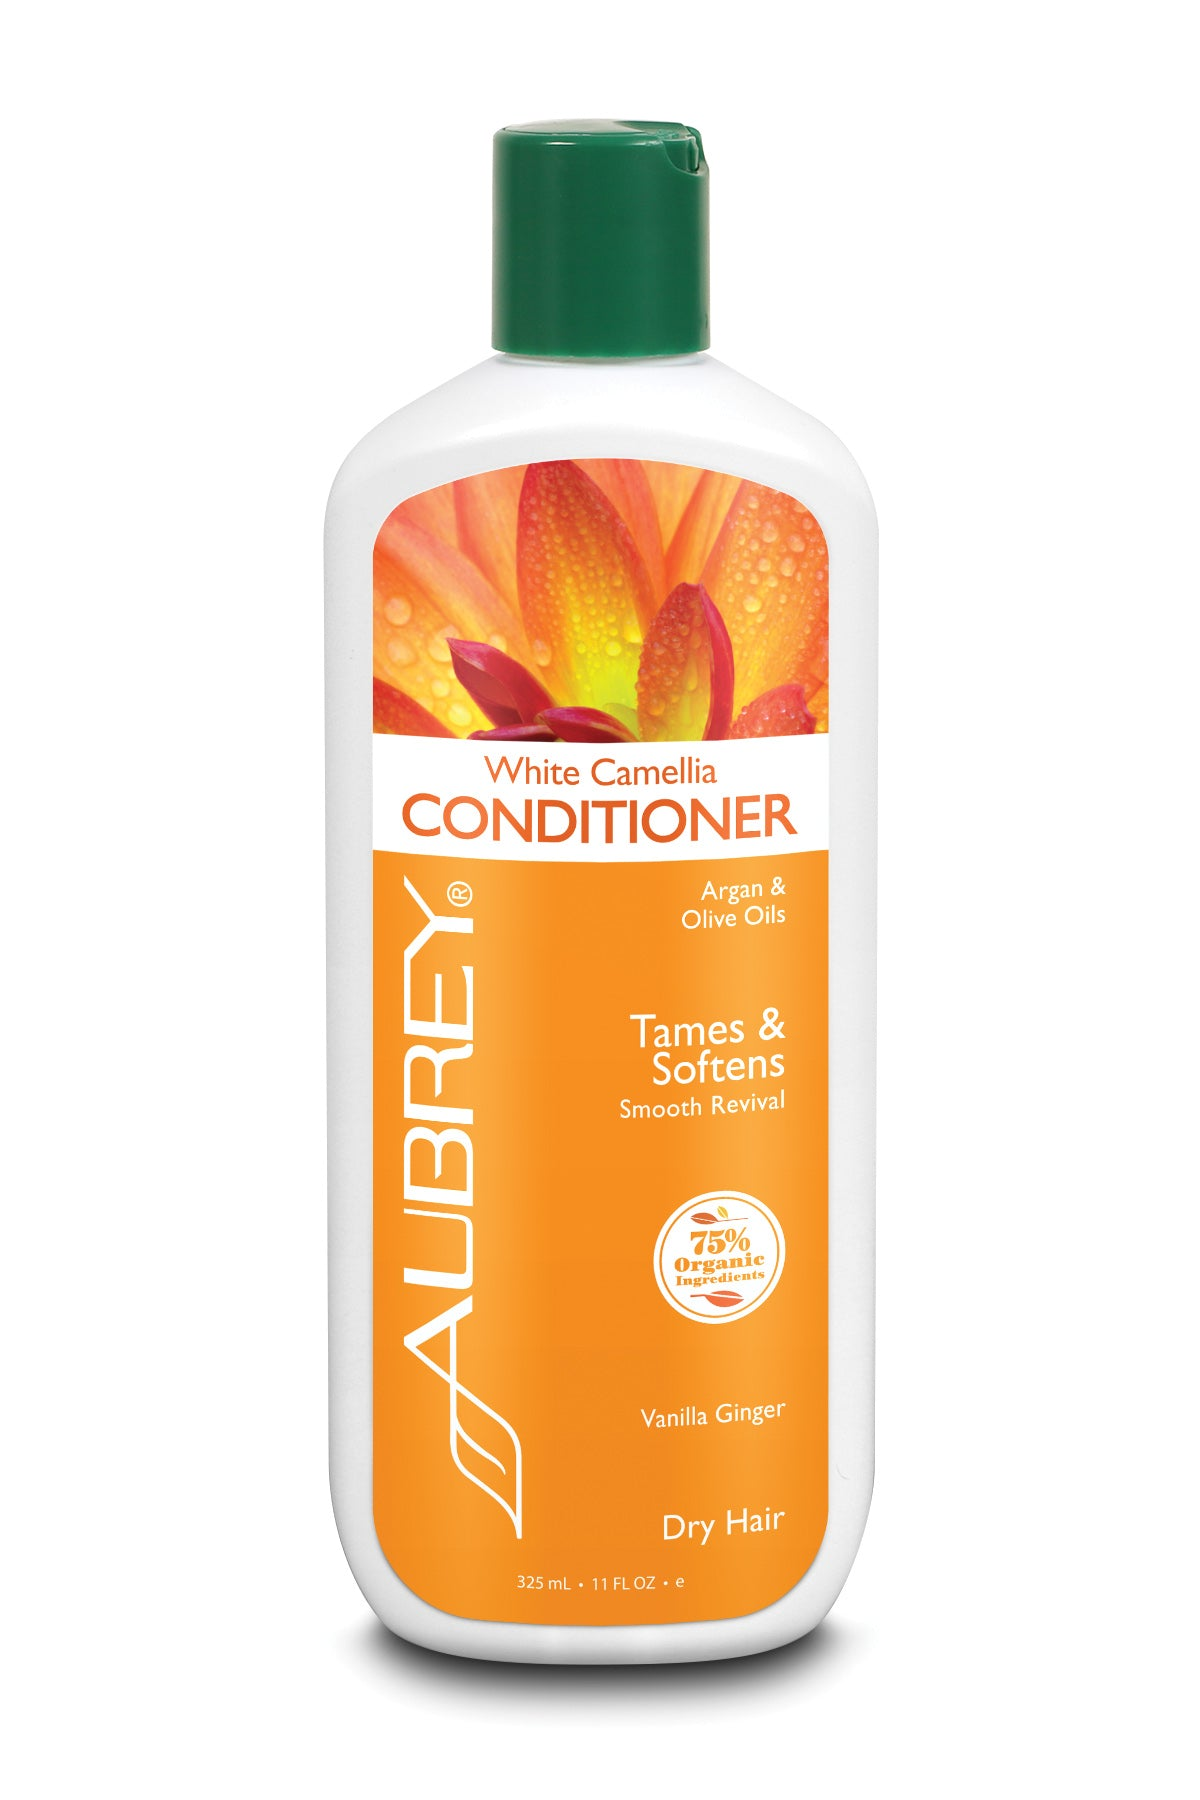 White Camellia Conditioner - 11oz